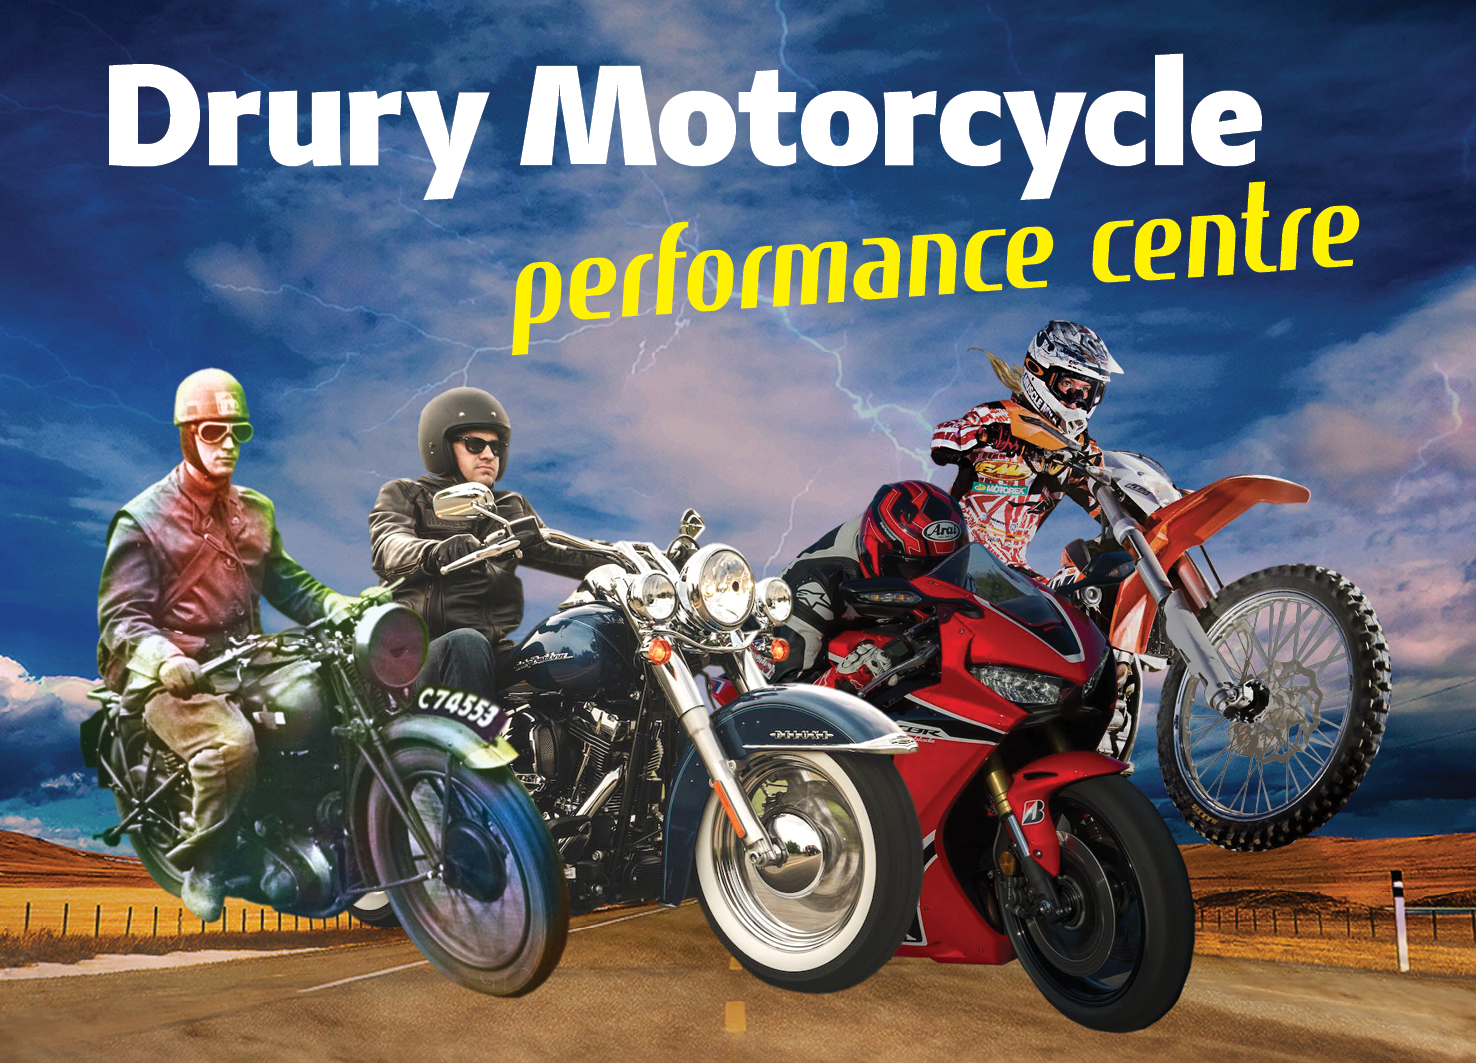 Drury Motorcycle Performance Centre for all your motorbike requirements